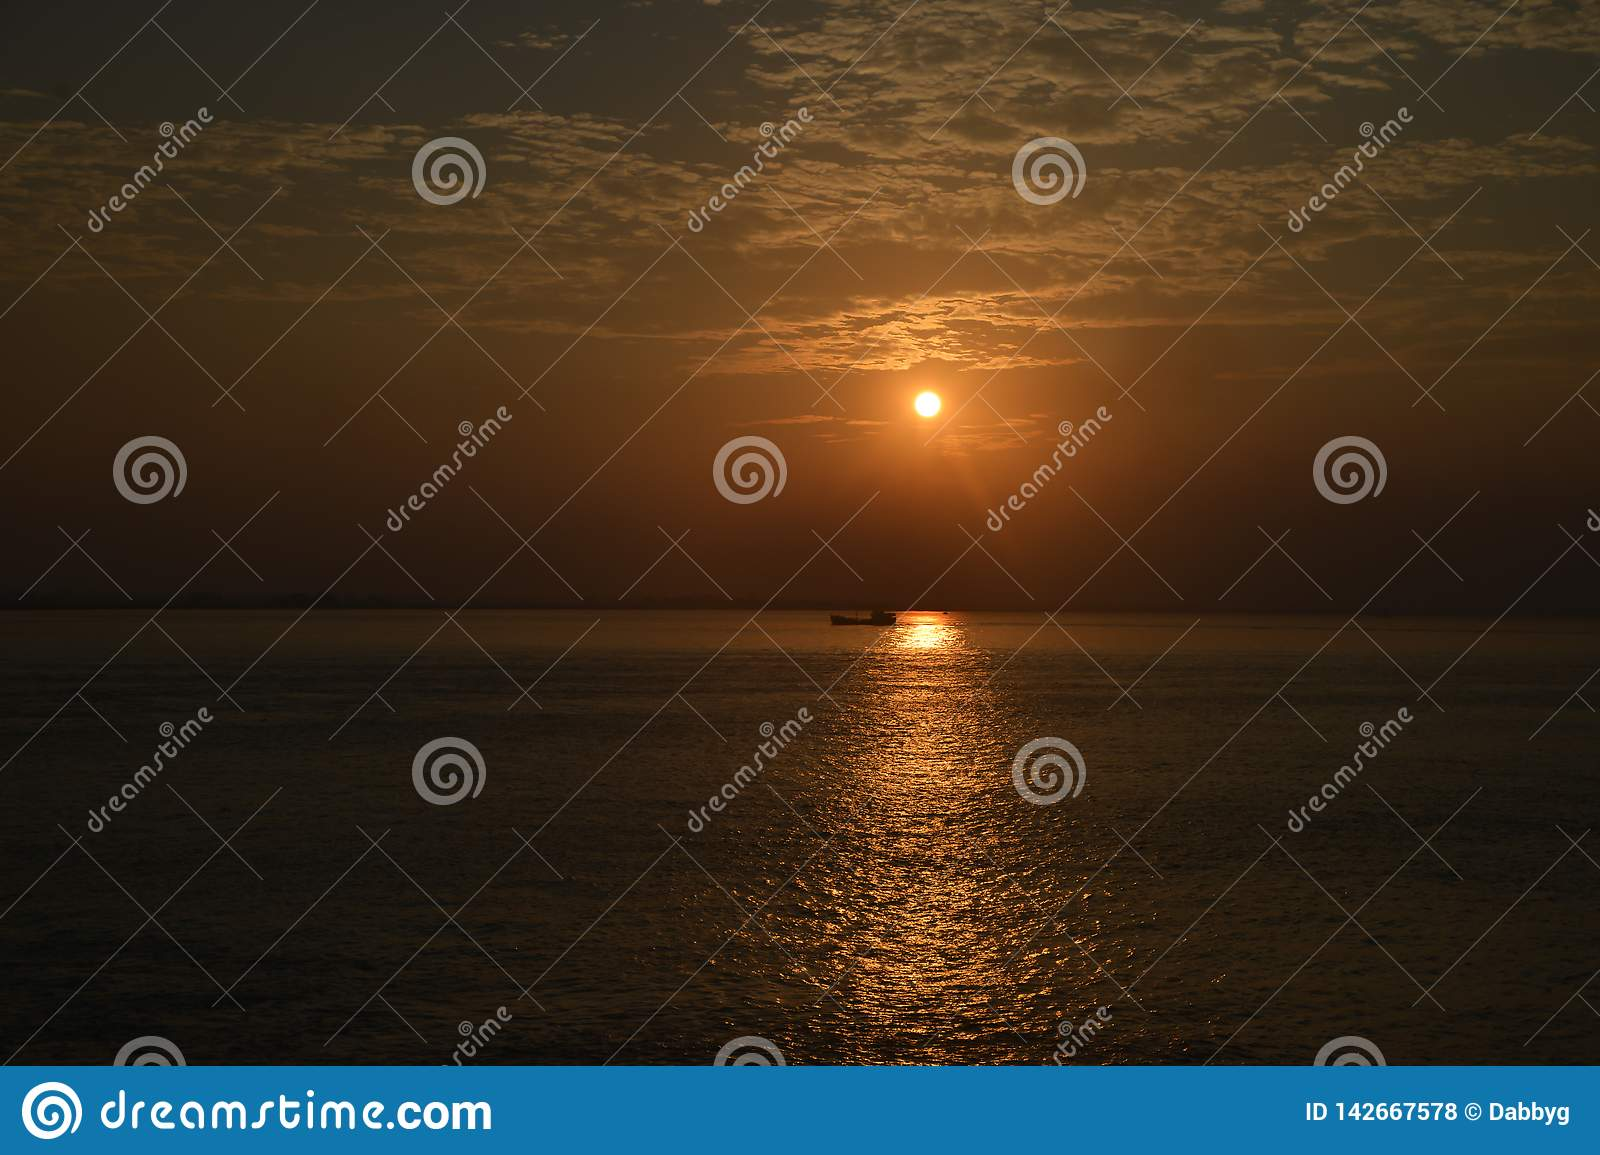 Sunset in India with a boat crossing the suns rays.